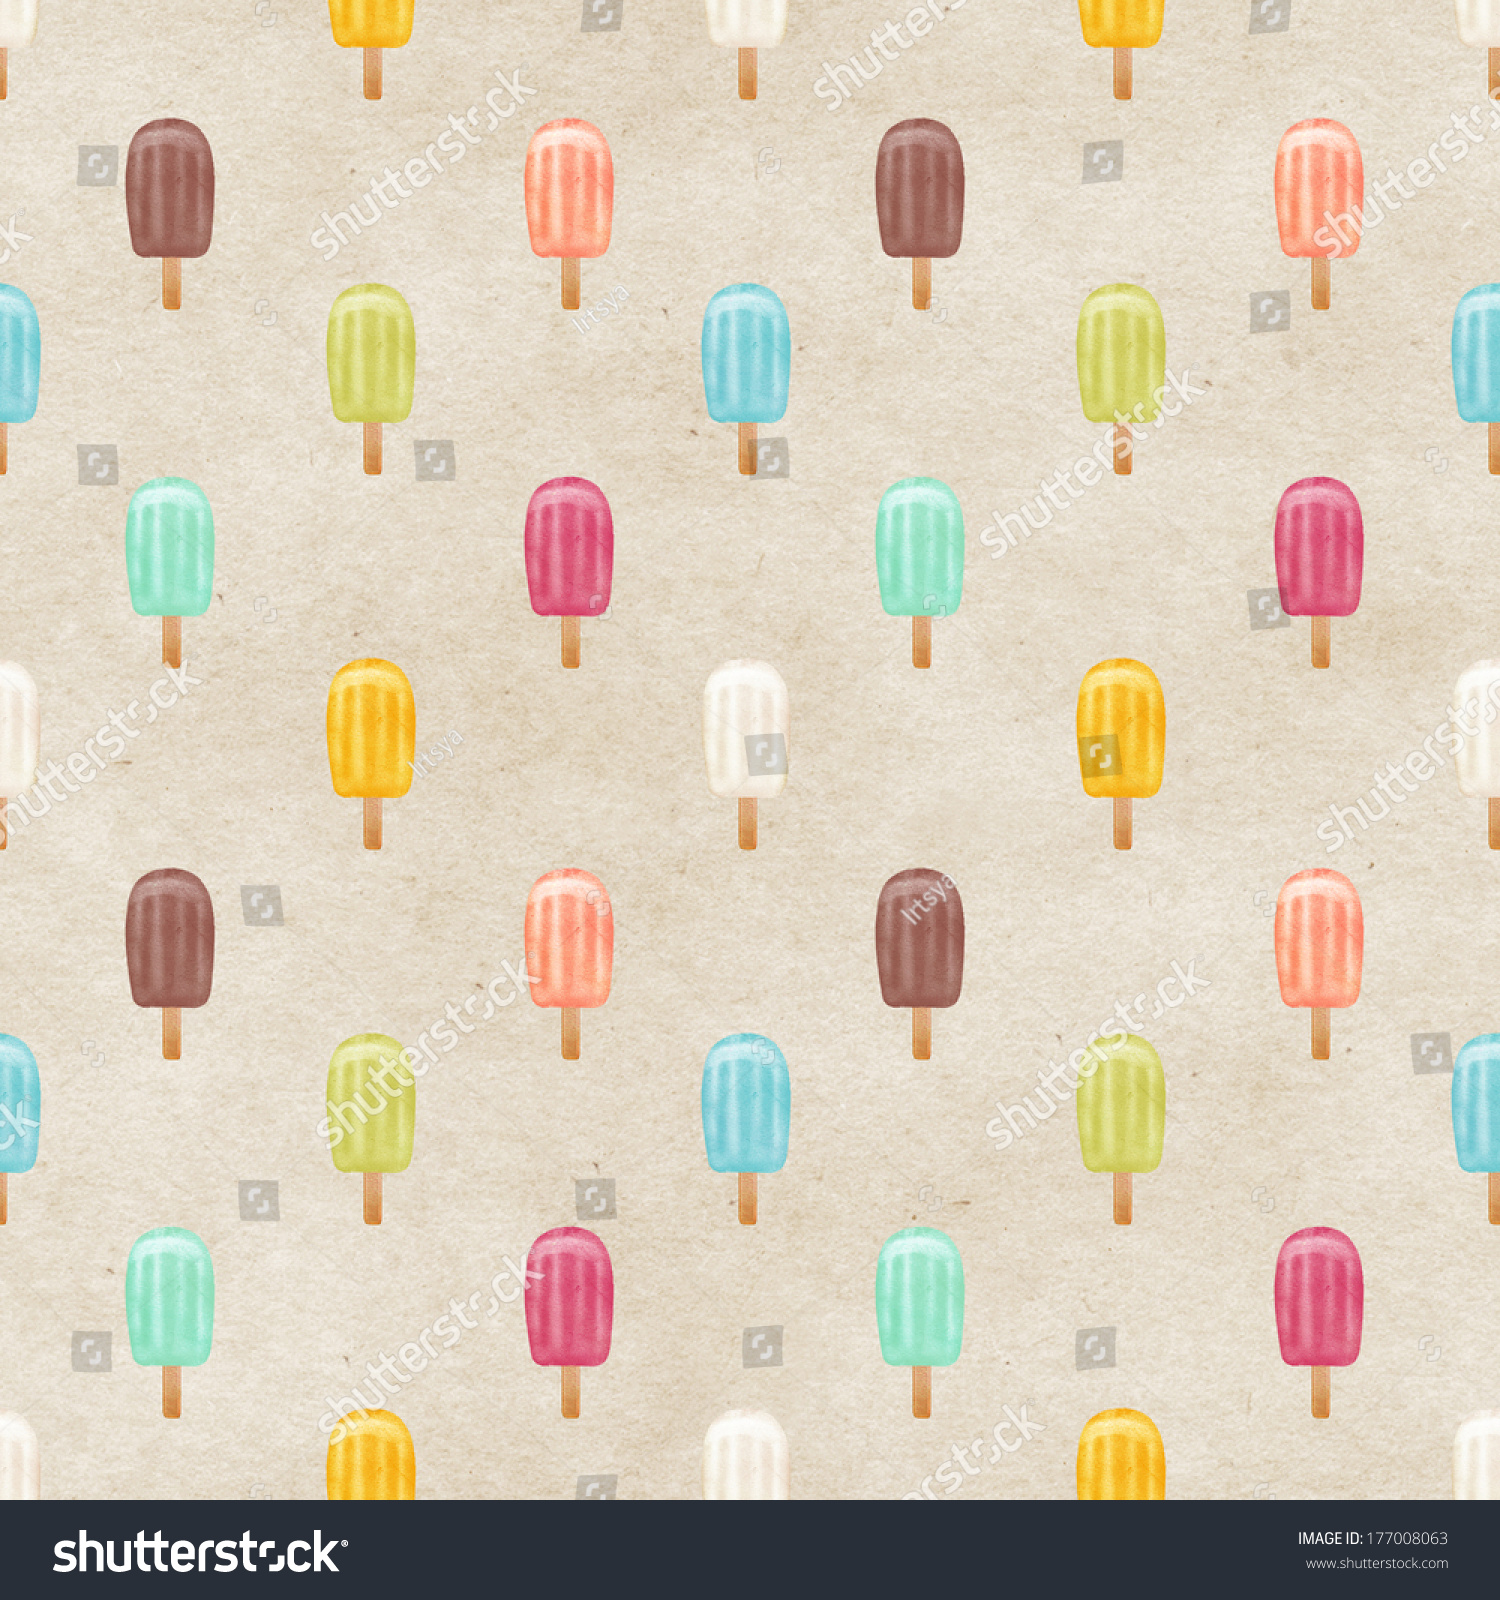 Seamless Pattern With Hand Drawn Watercolor Ice Cream: Seamless Watercolor Ice Cream Pattern On Paper Texture